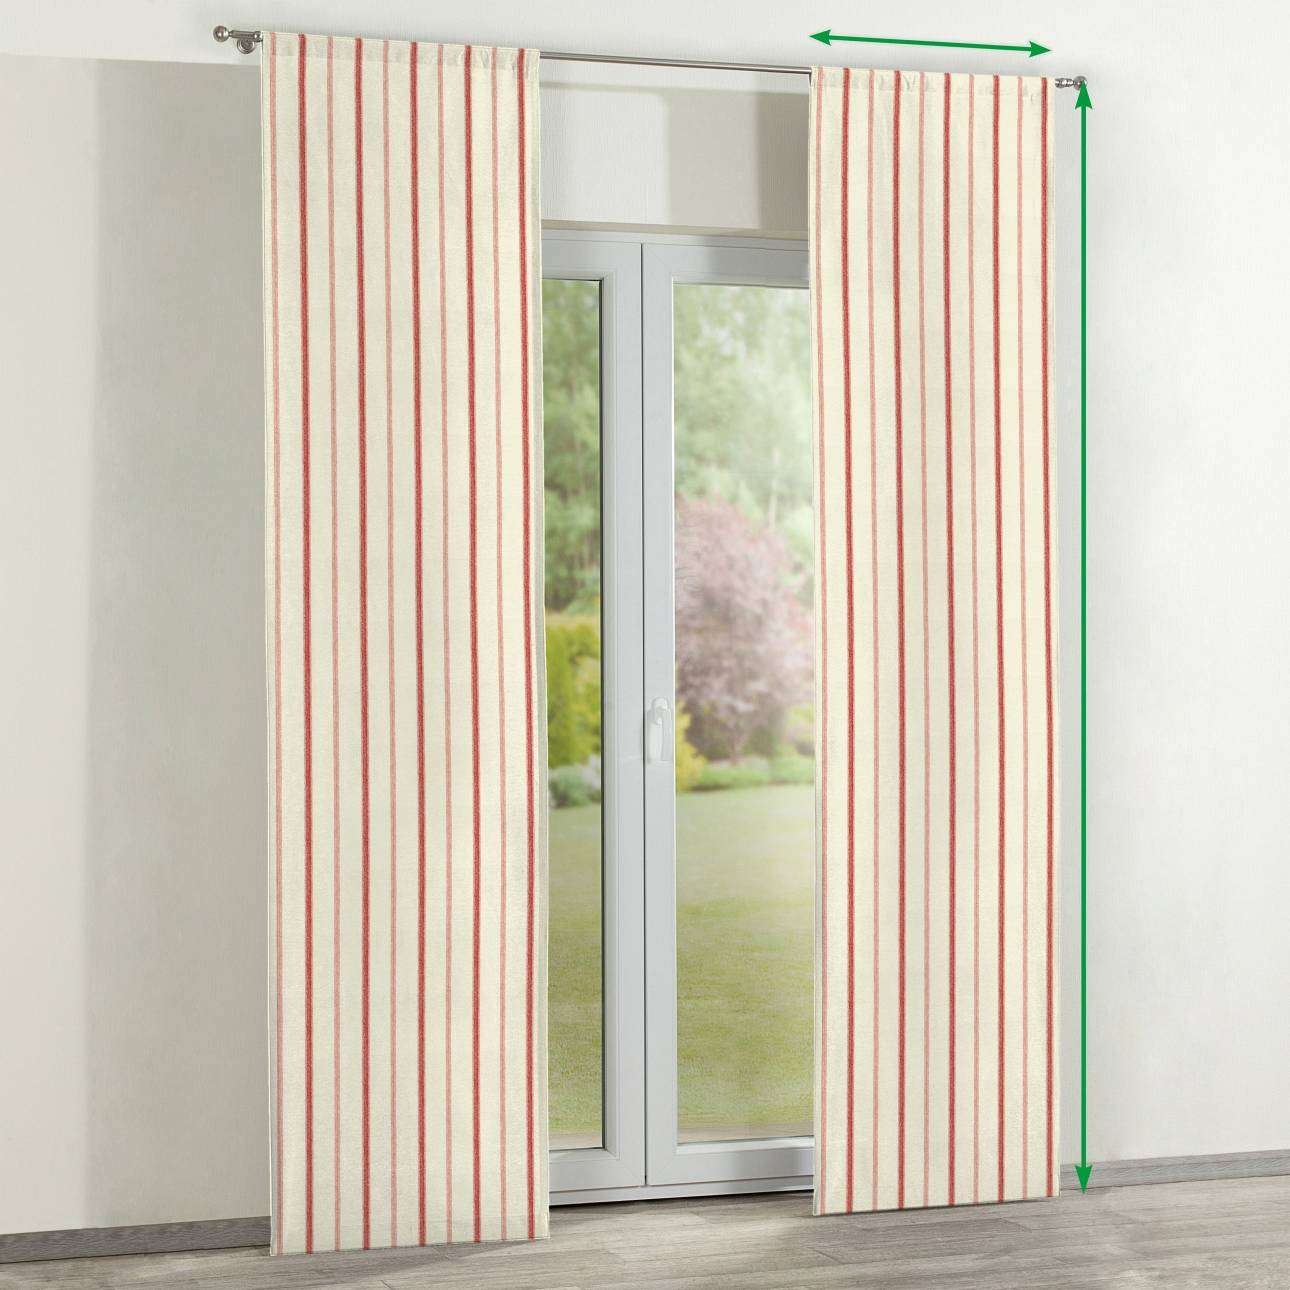 Slot panel curtains – Set of 2 in collection Avinon, fabric: 129-15